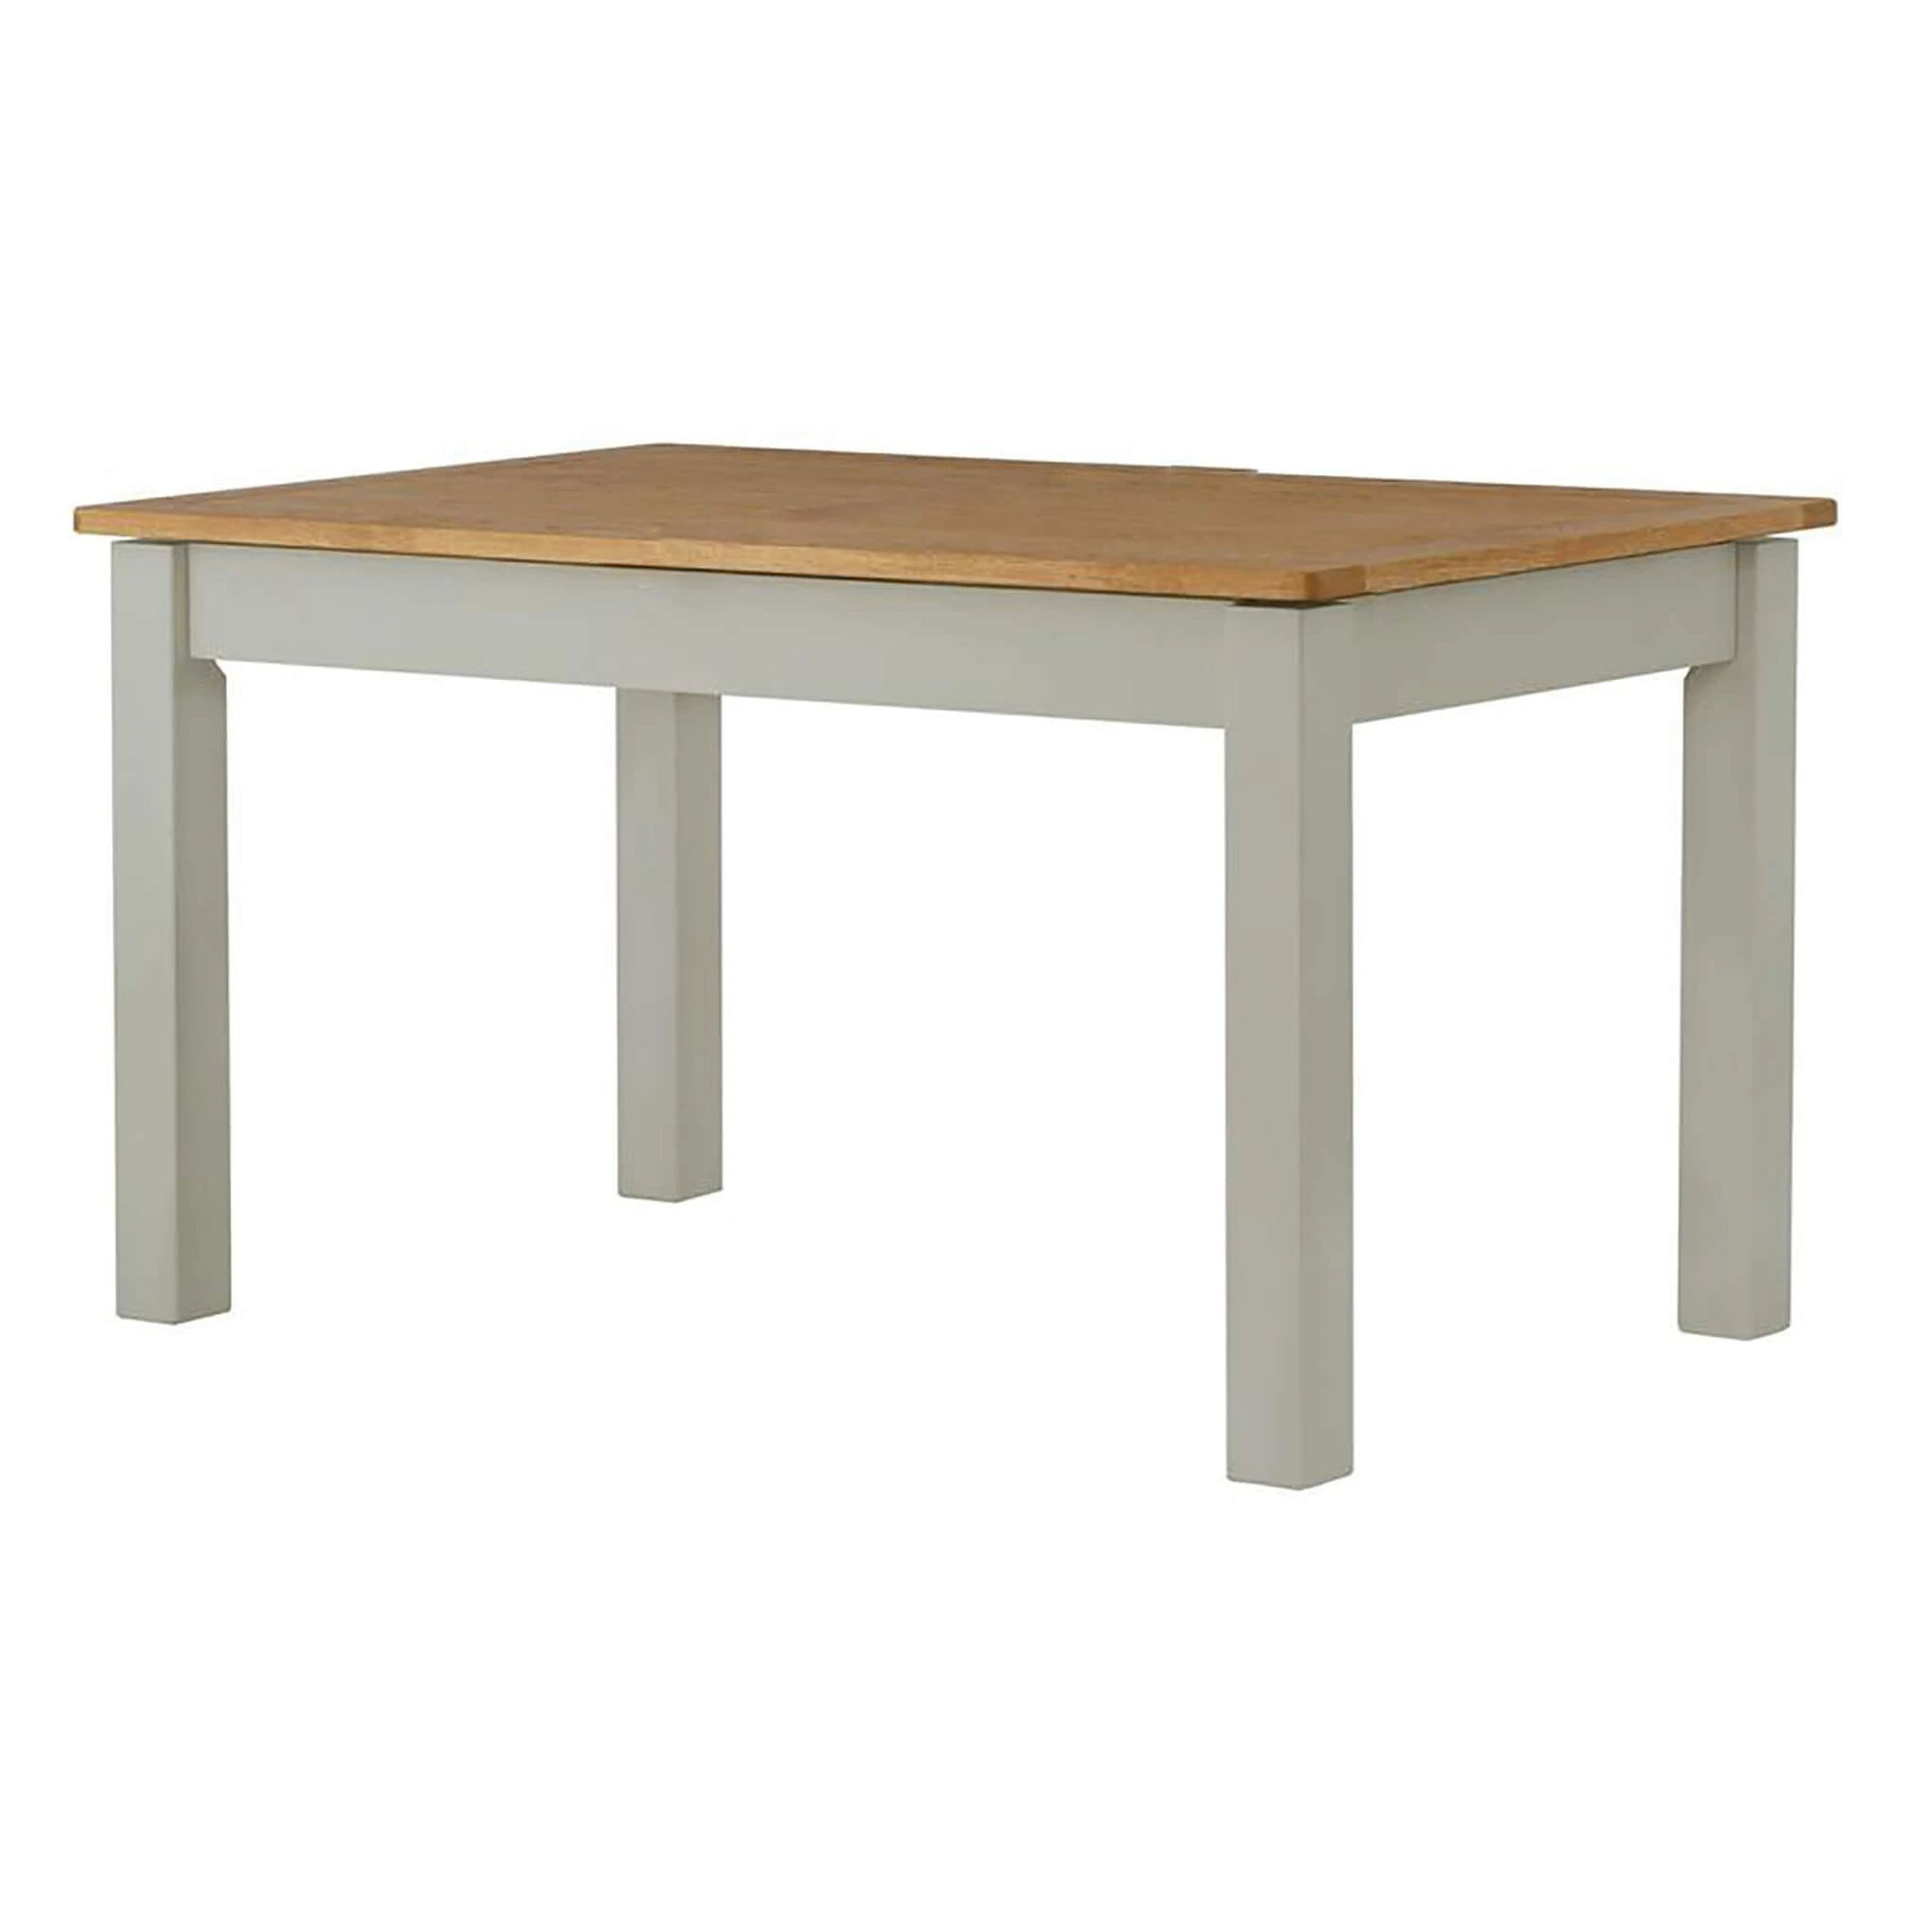 The Padstow Grey Wooden Dining Table with Oak Top 120cm from Roseland Furniture